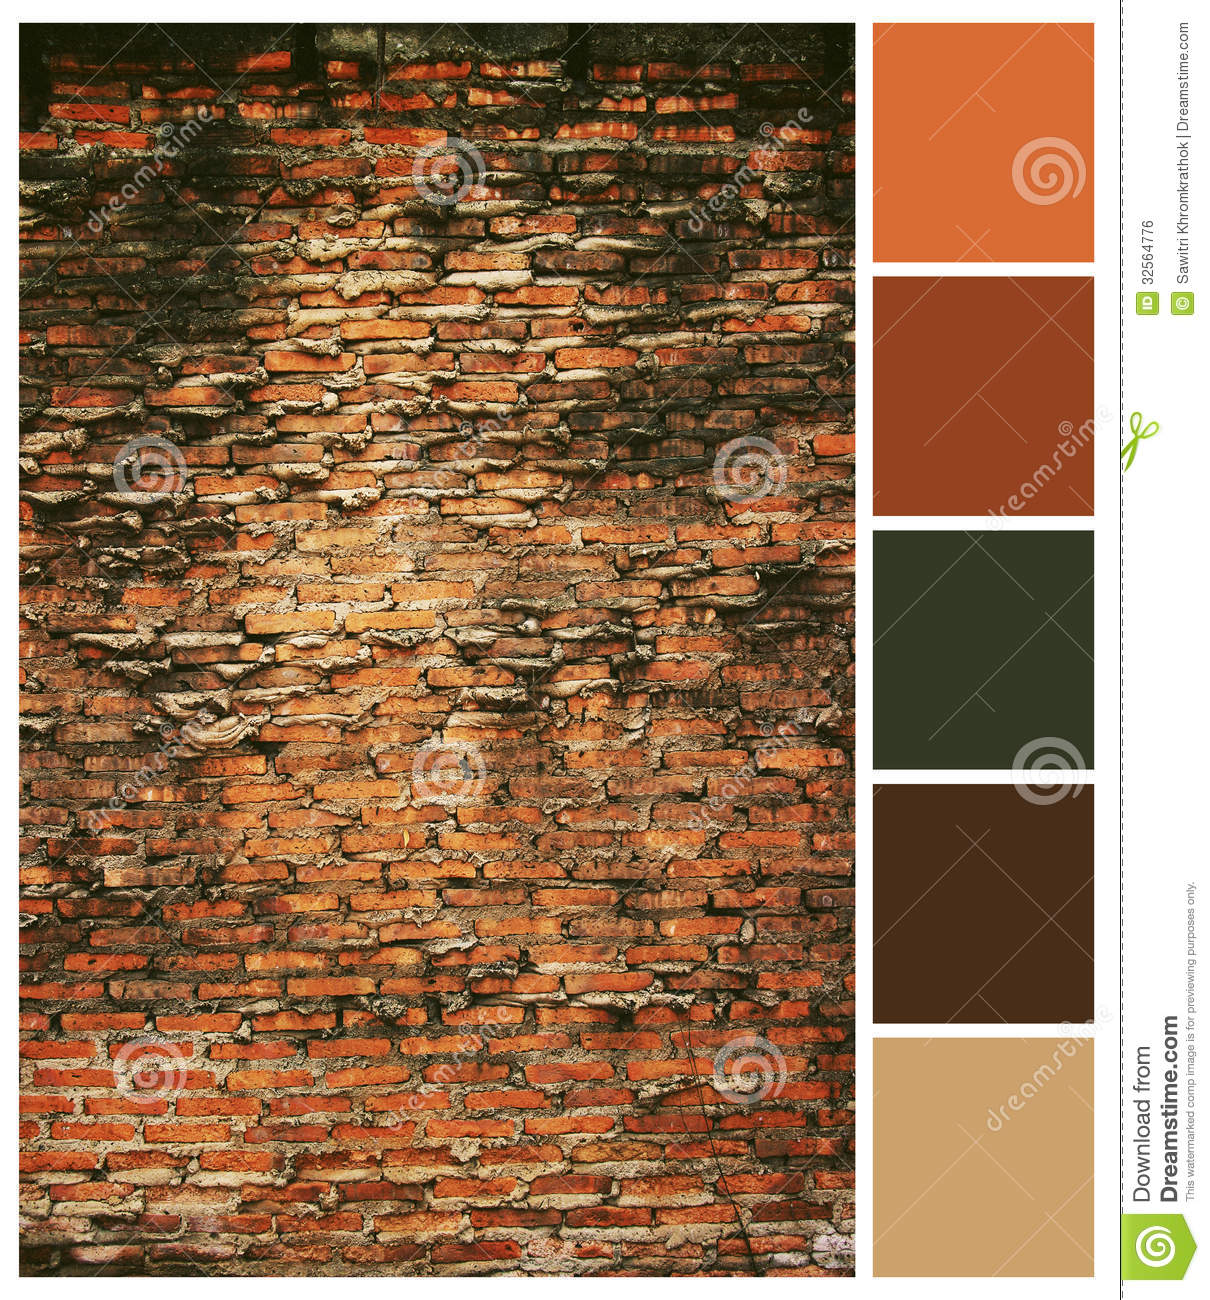 Brick Wall Design Manual : Old brick wall background colored palette guide royalty